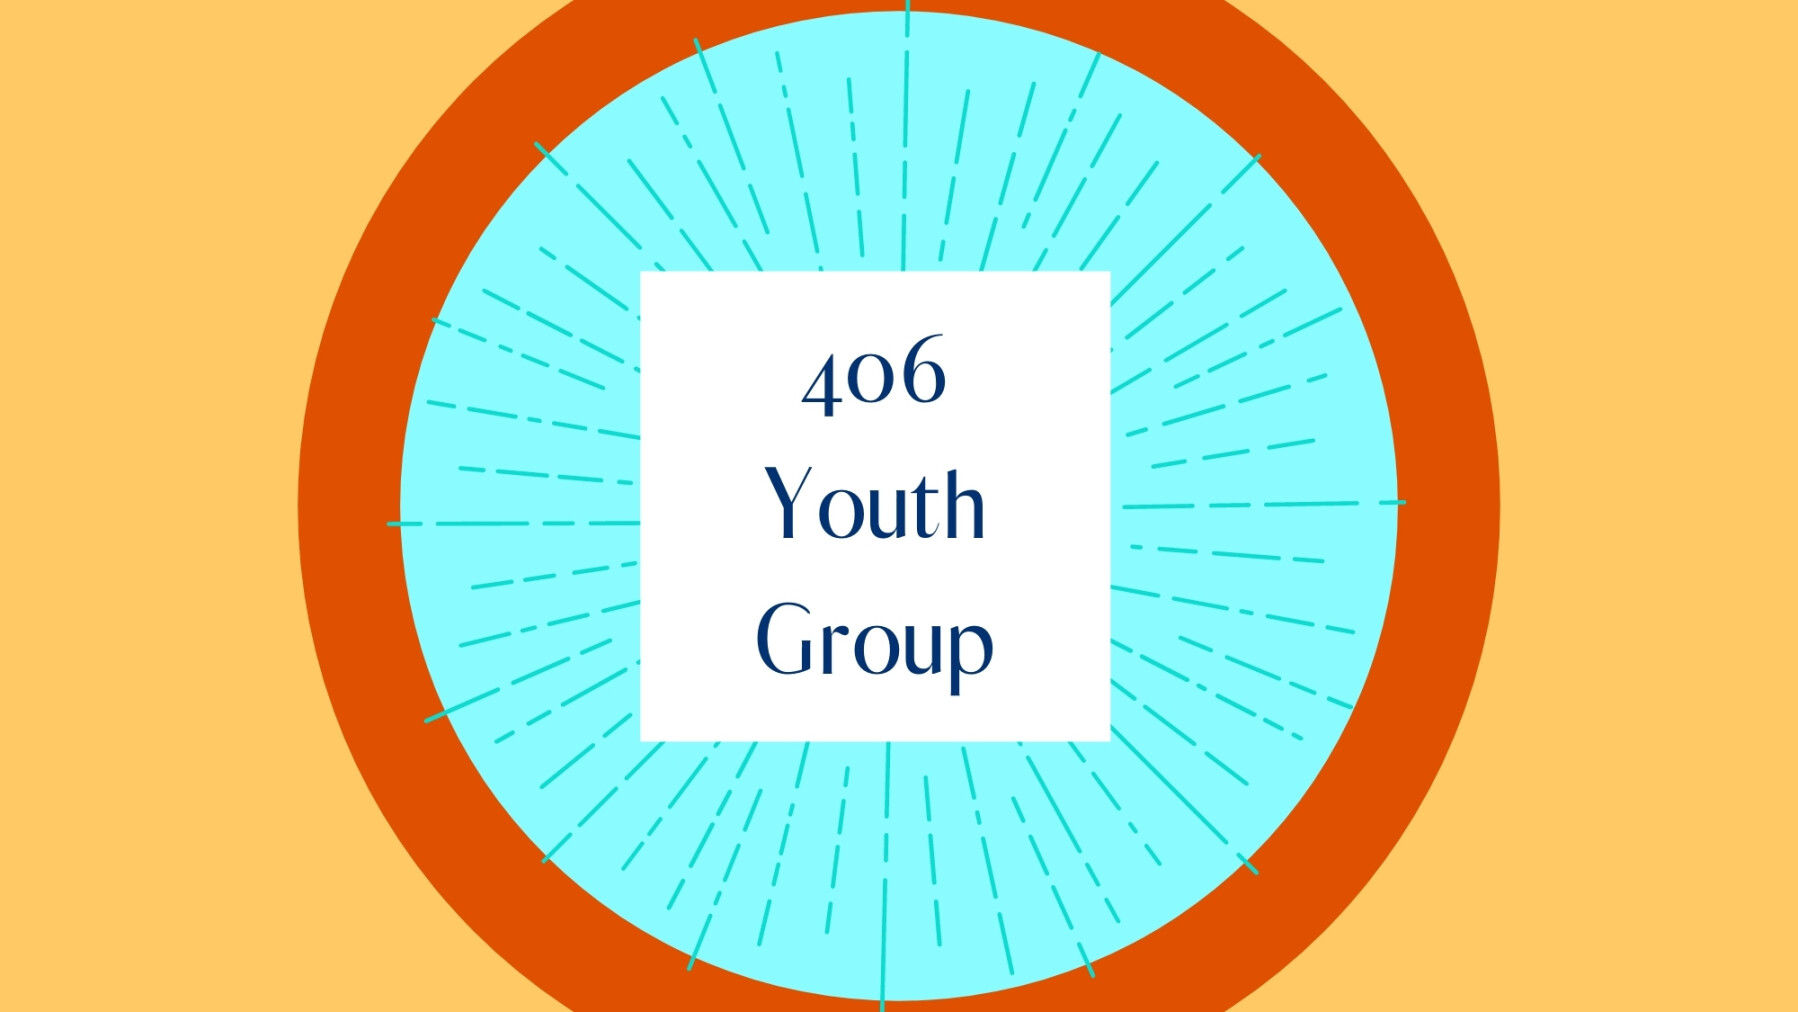 406 Youth Group